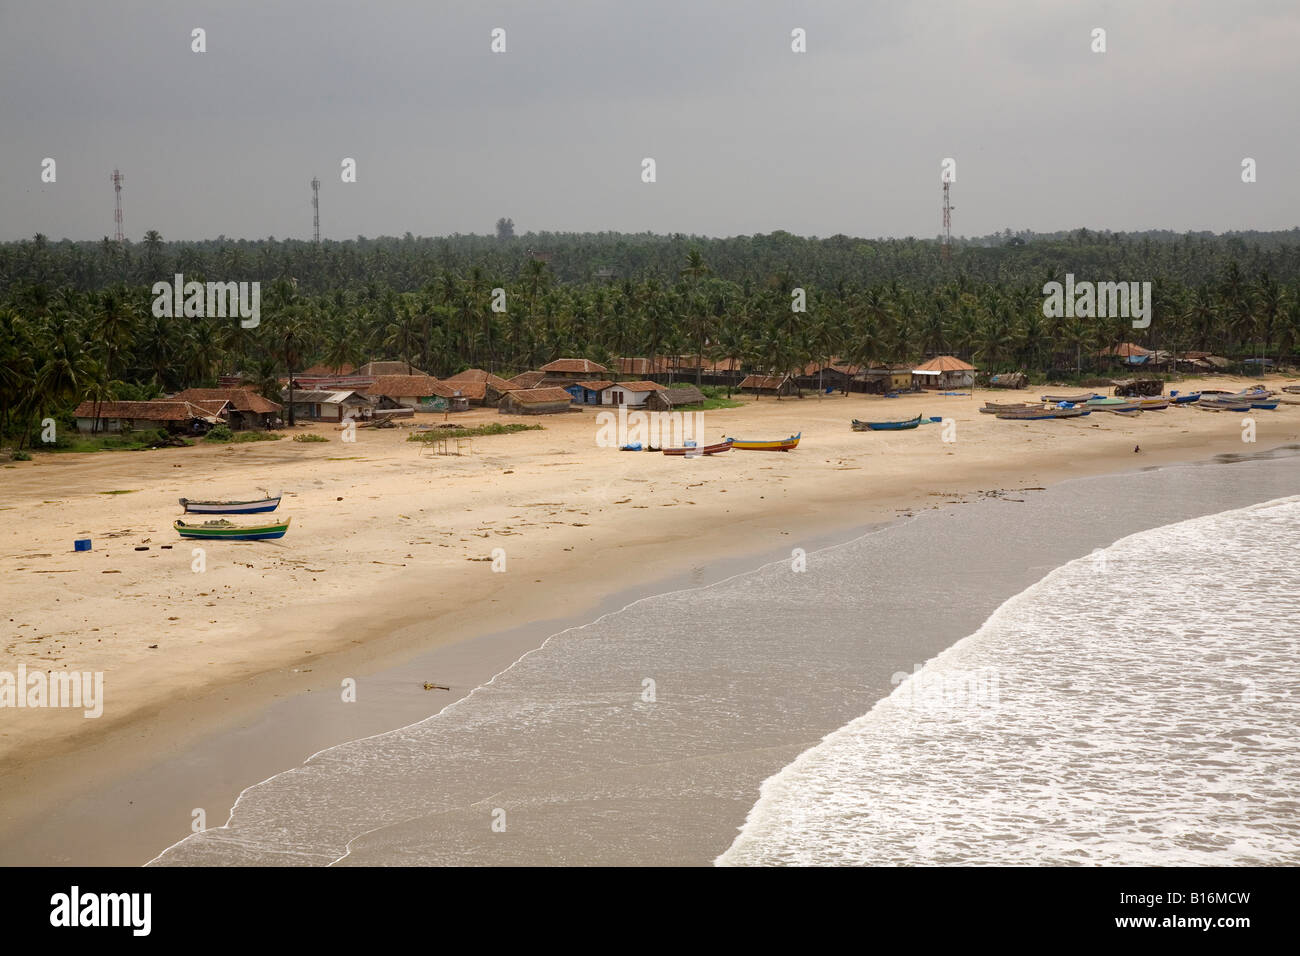 The view onto Bekal Fort Beah from Bekal Fort near Kasaragod, Kerala. Fishing boats stand on the golden sand. - Stock Image